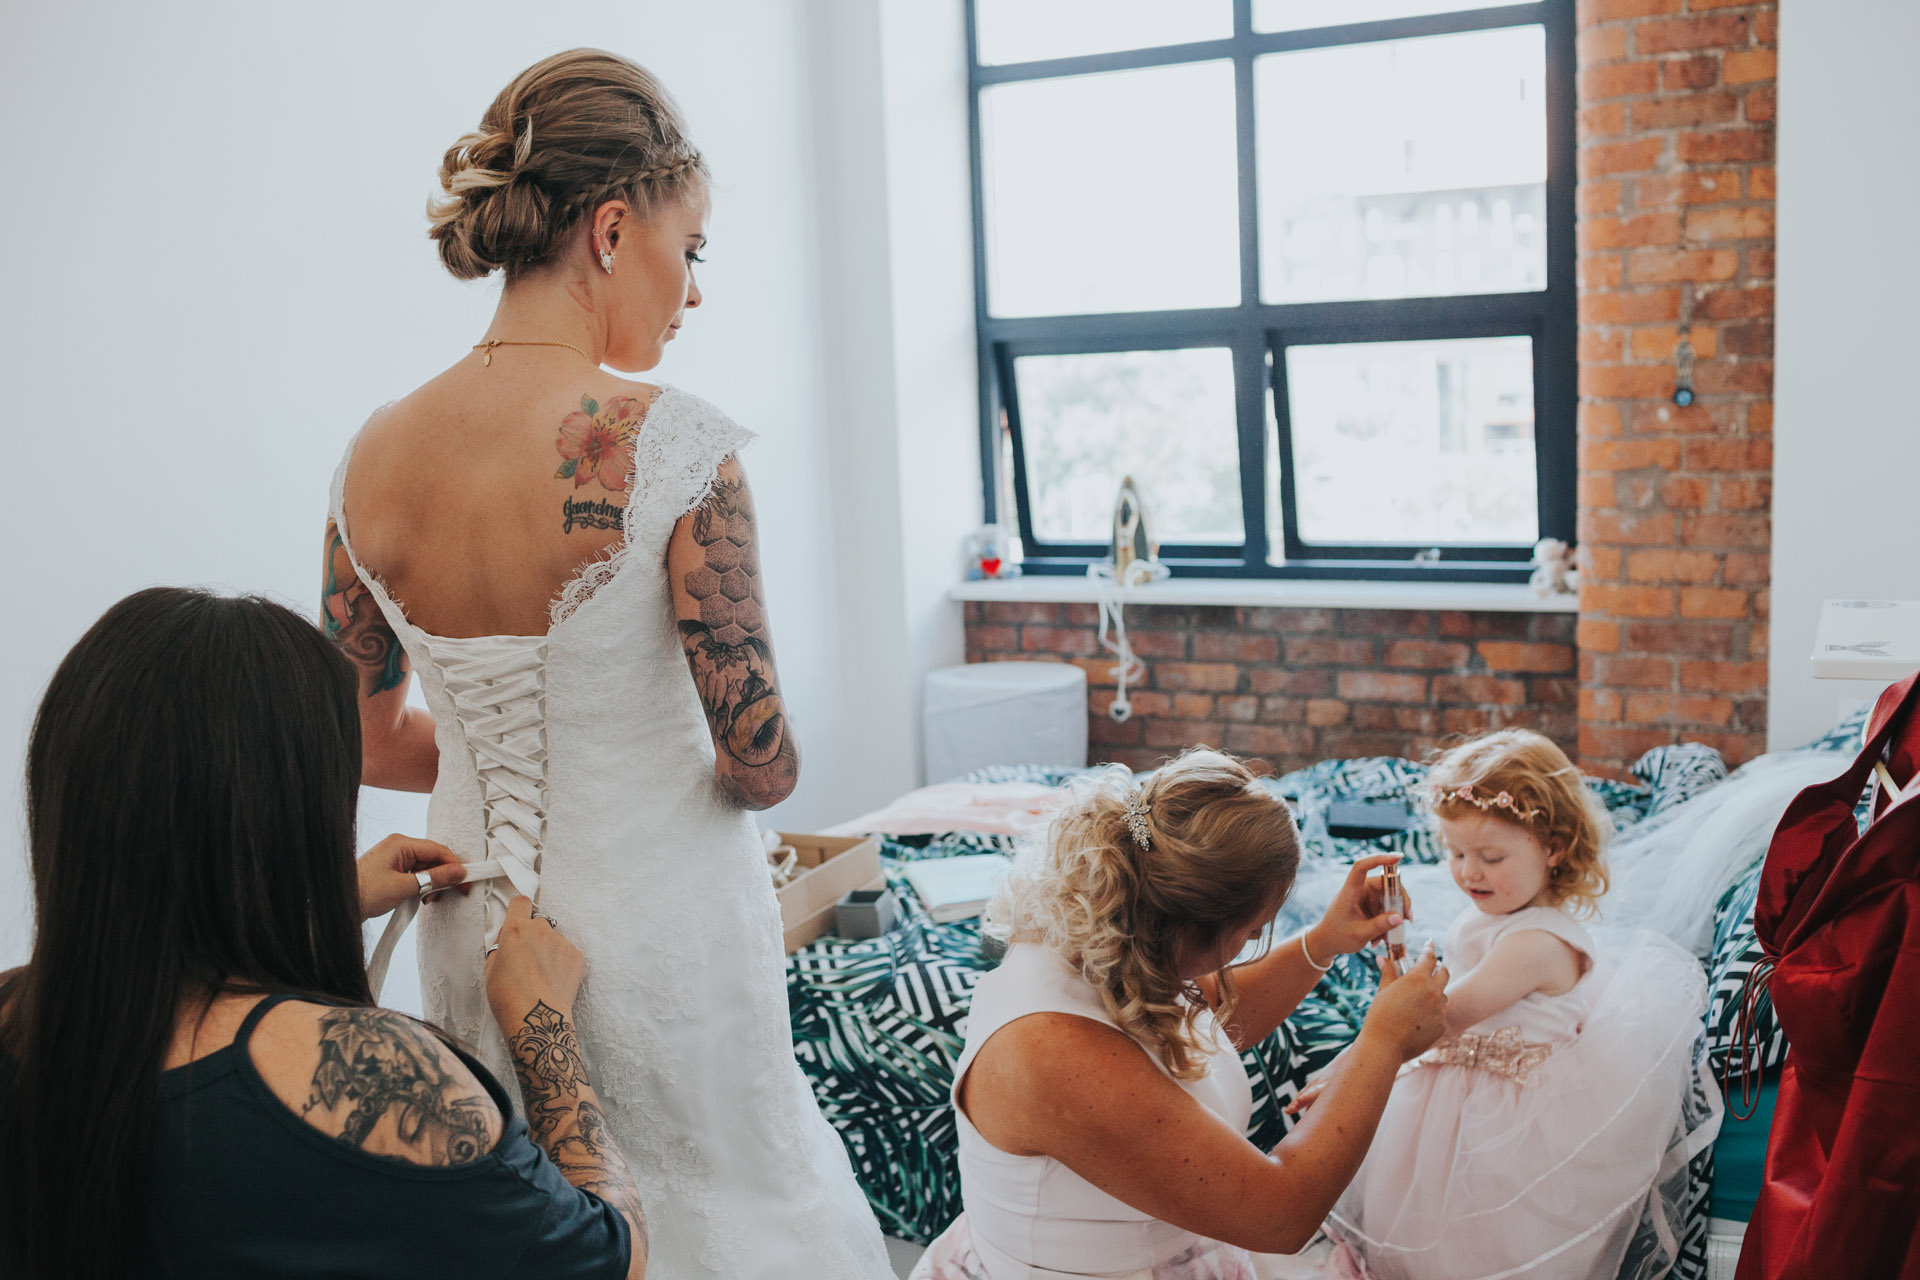 Bride has the back of her wedding dress fastened as bridesmaid puts make up on flower girl.